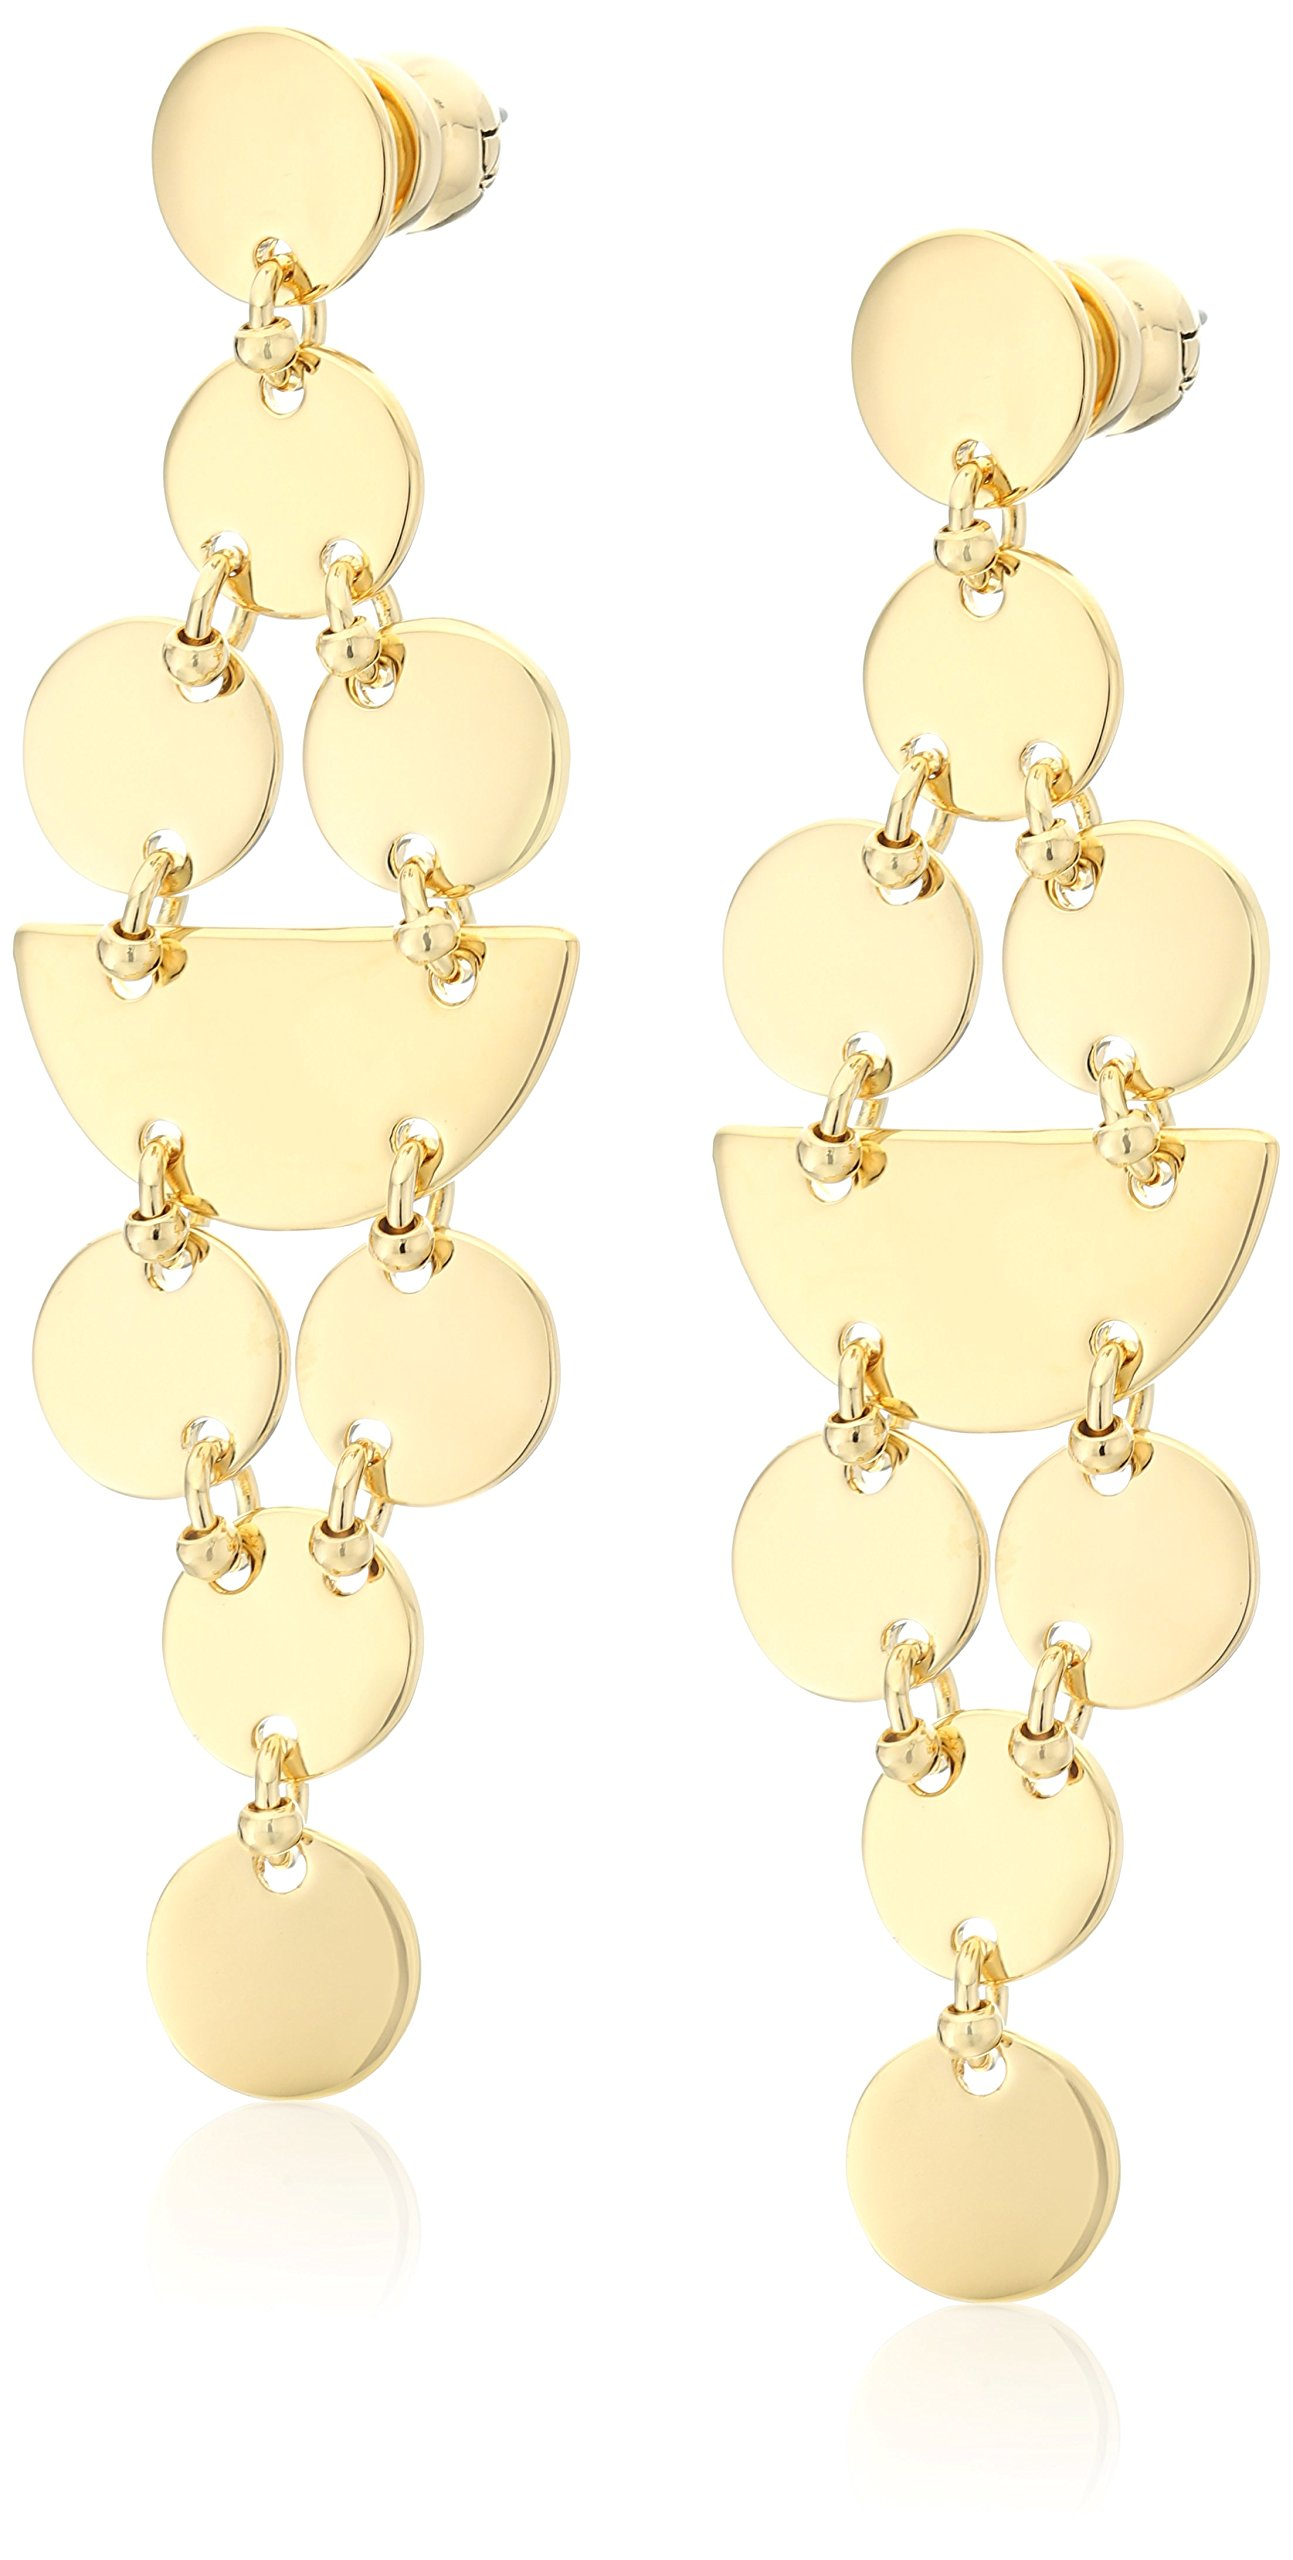 Diane von Furstenberg ''Summer Disco'' Geometric Circle Chandelier Drop Earrings